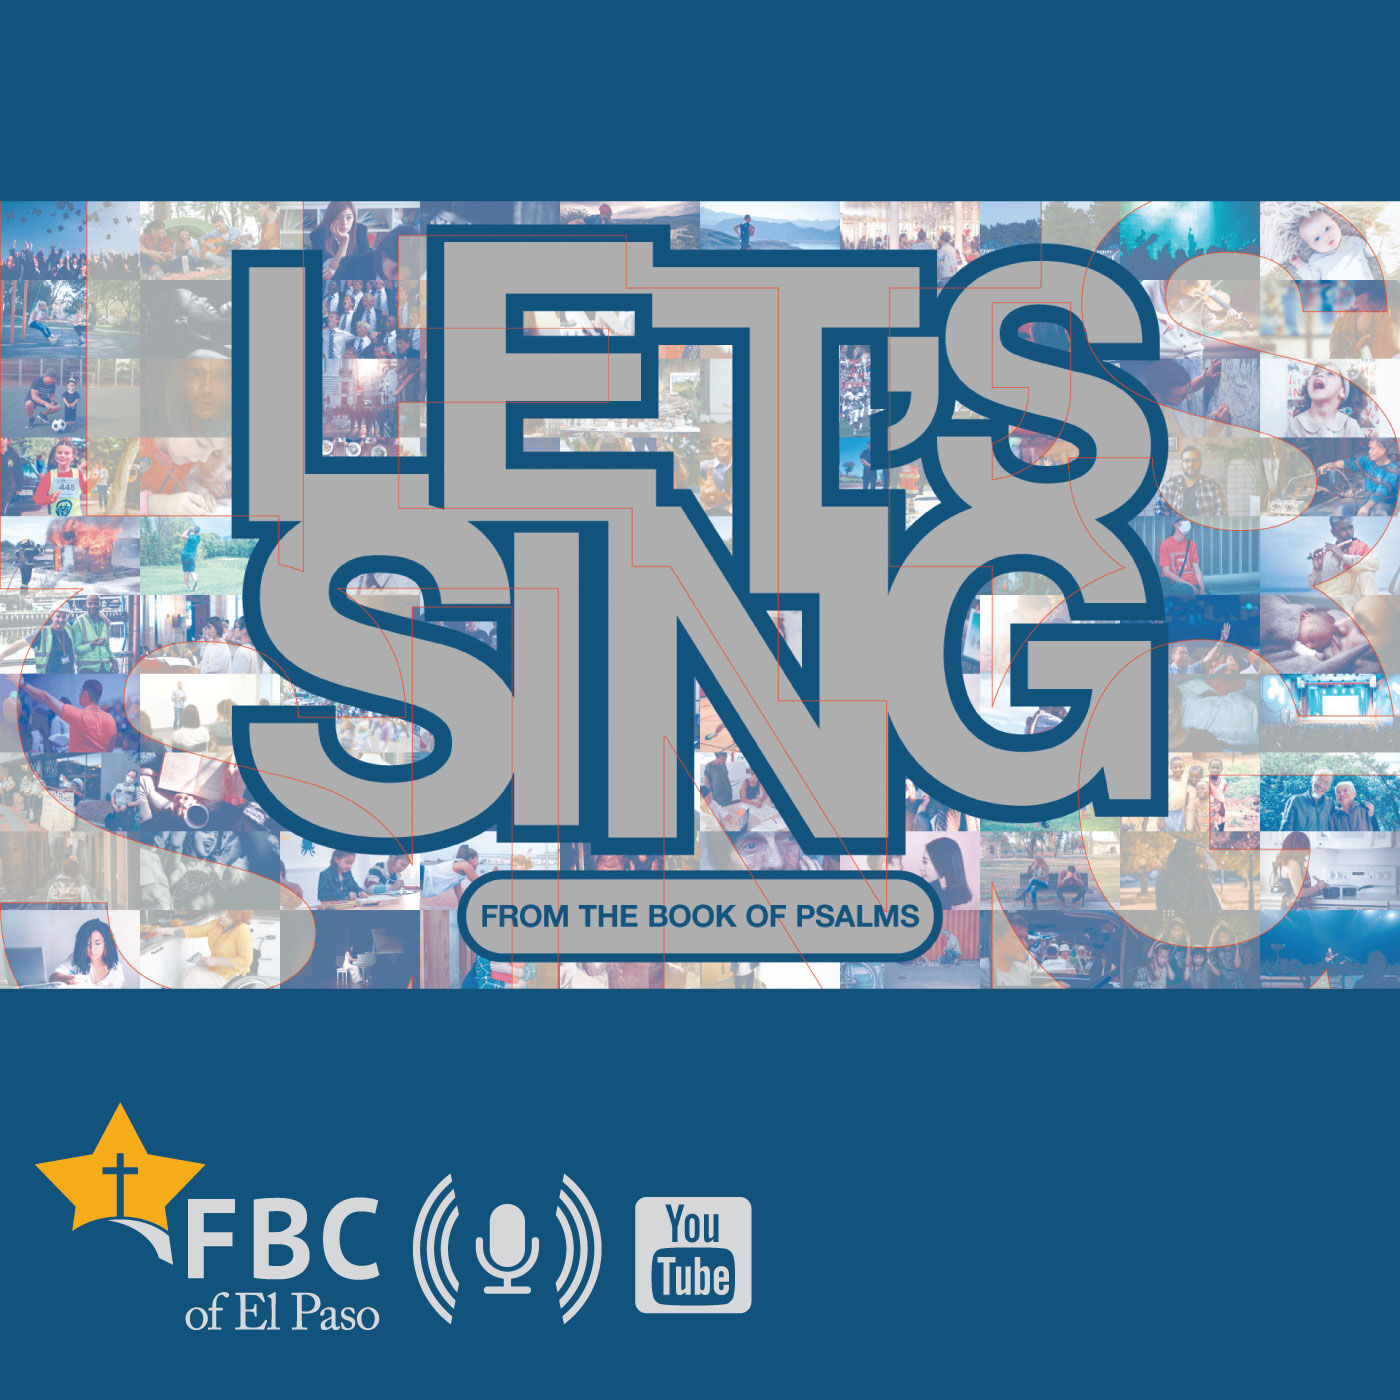 Let's Sing: A Song for the Ages